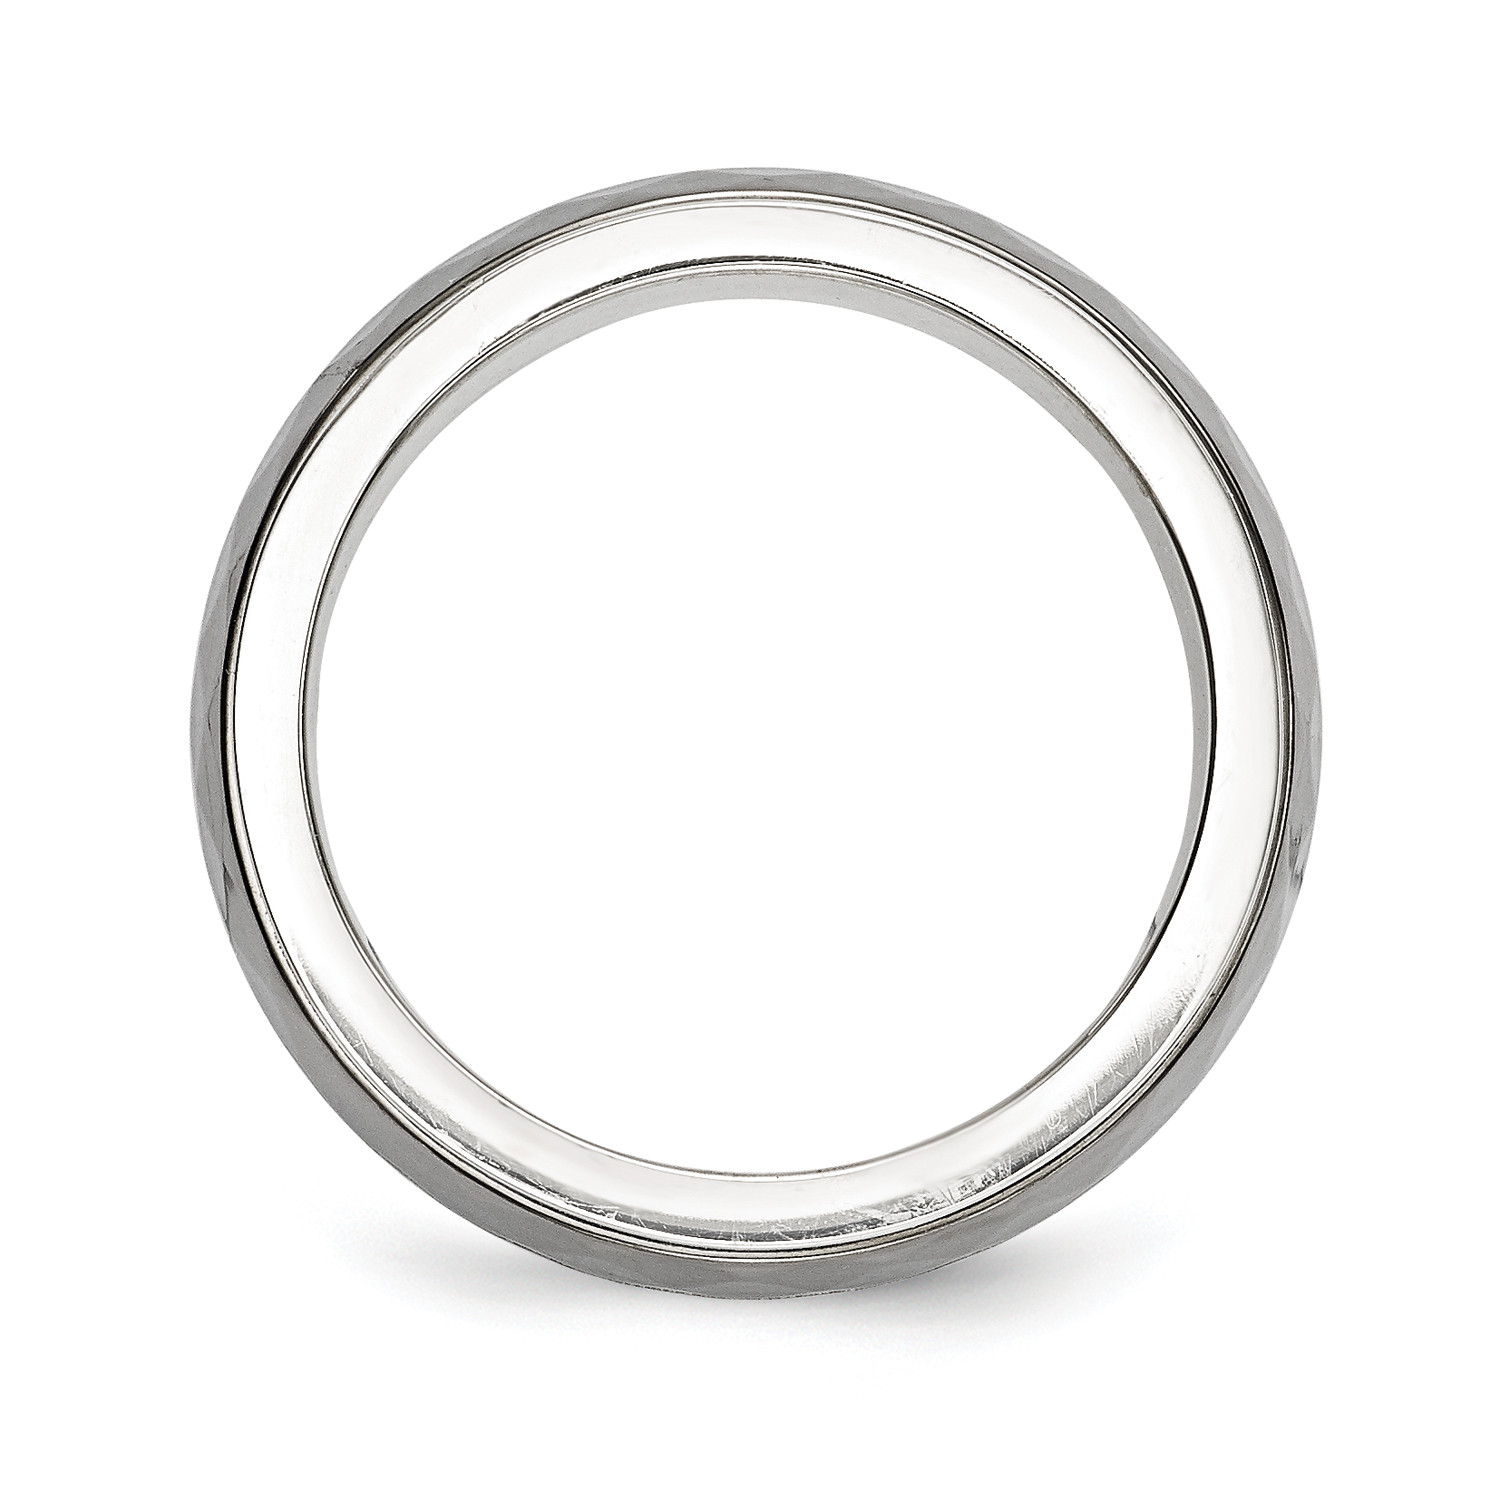 silver ring with gray titanium inlay and black groove